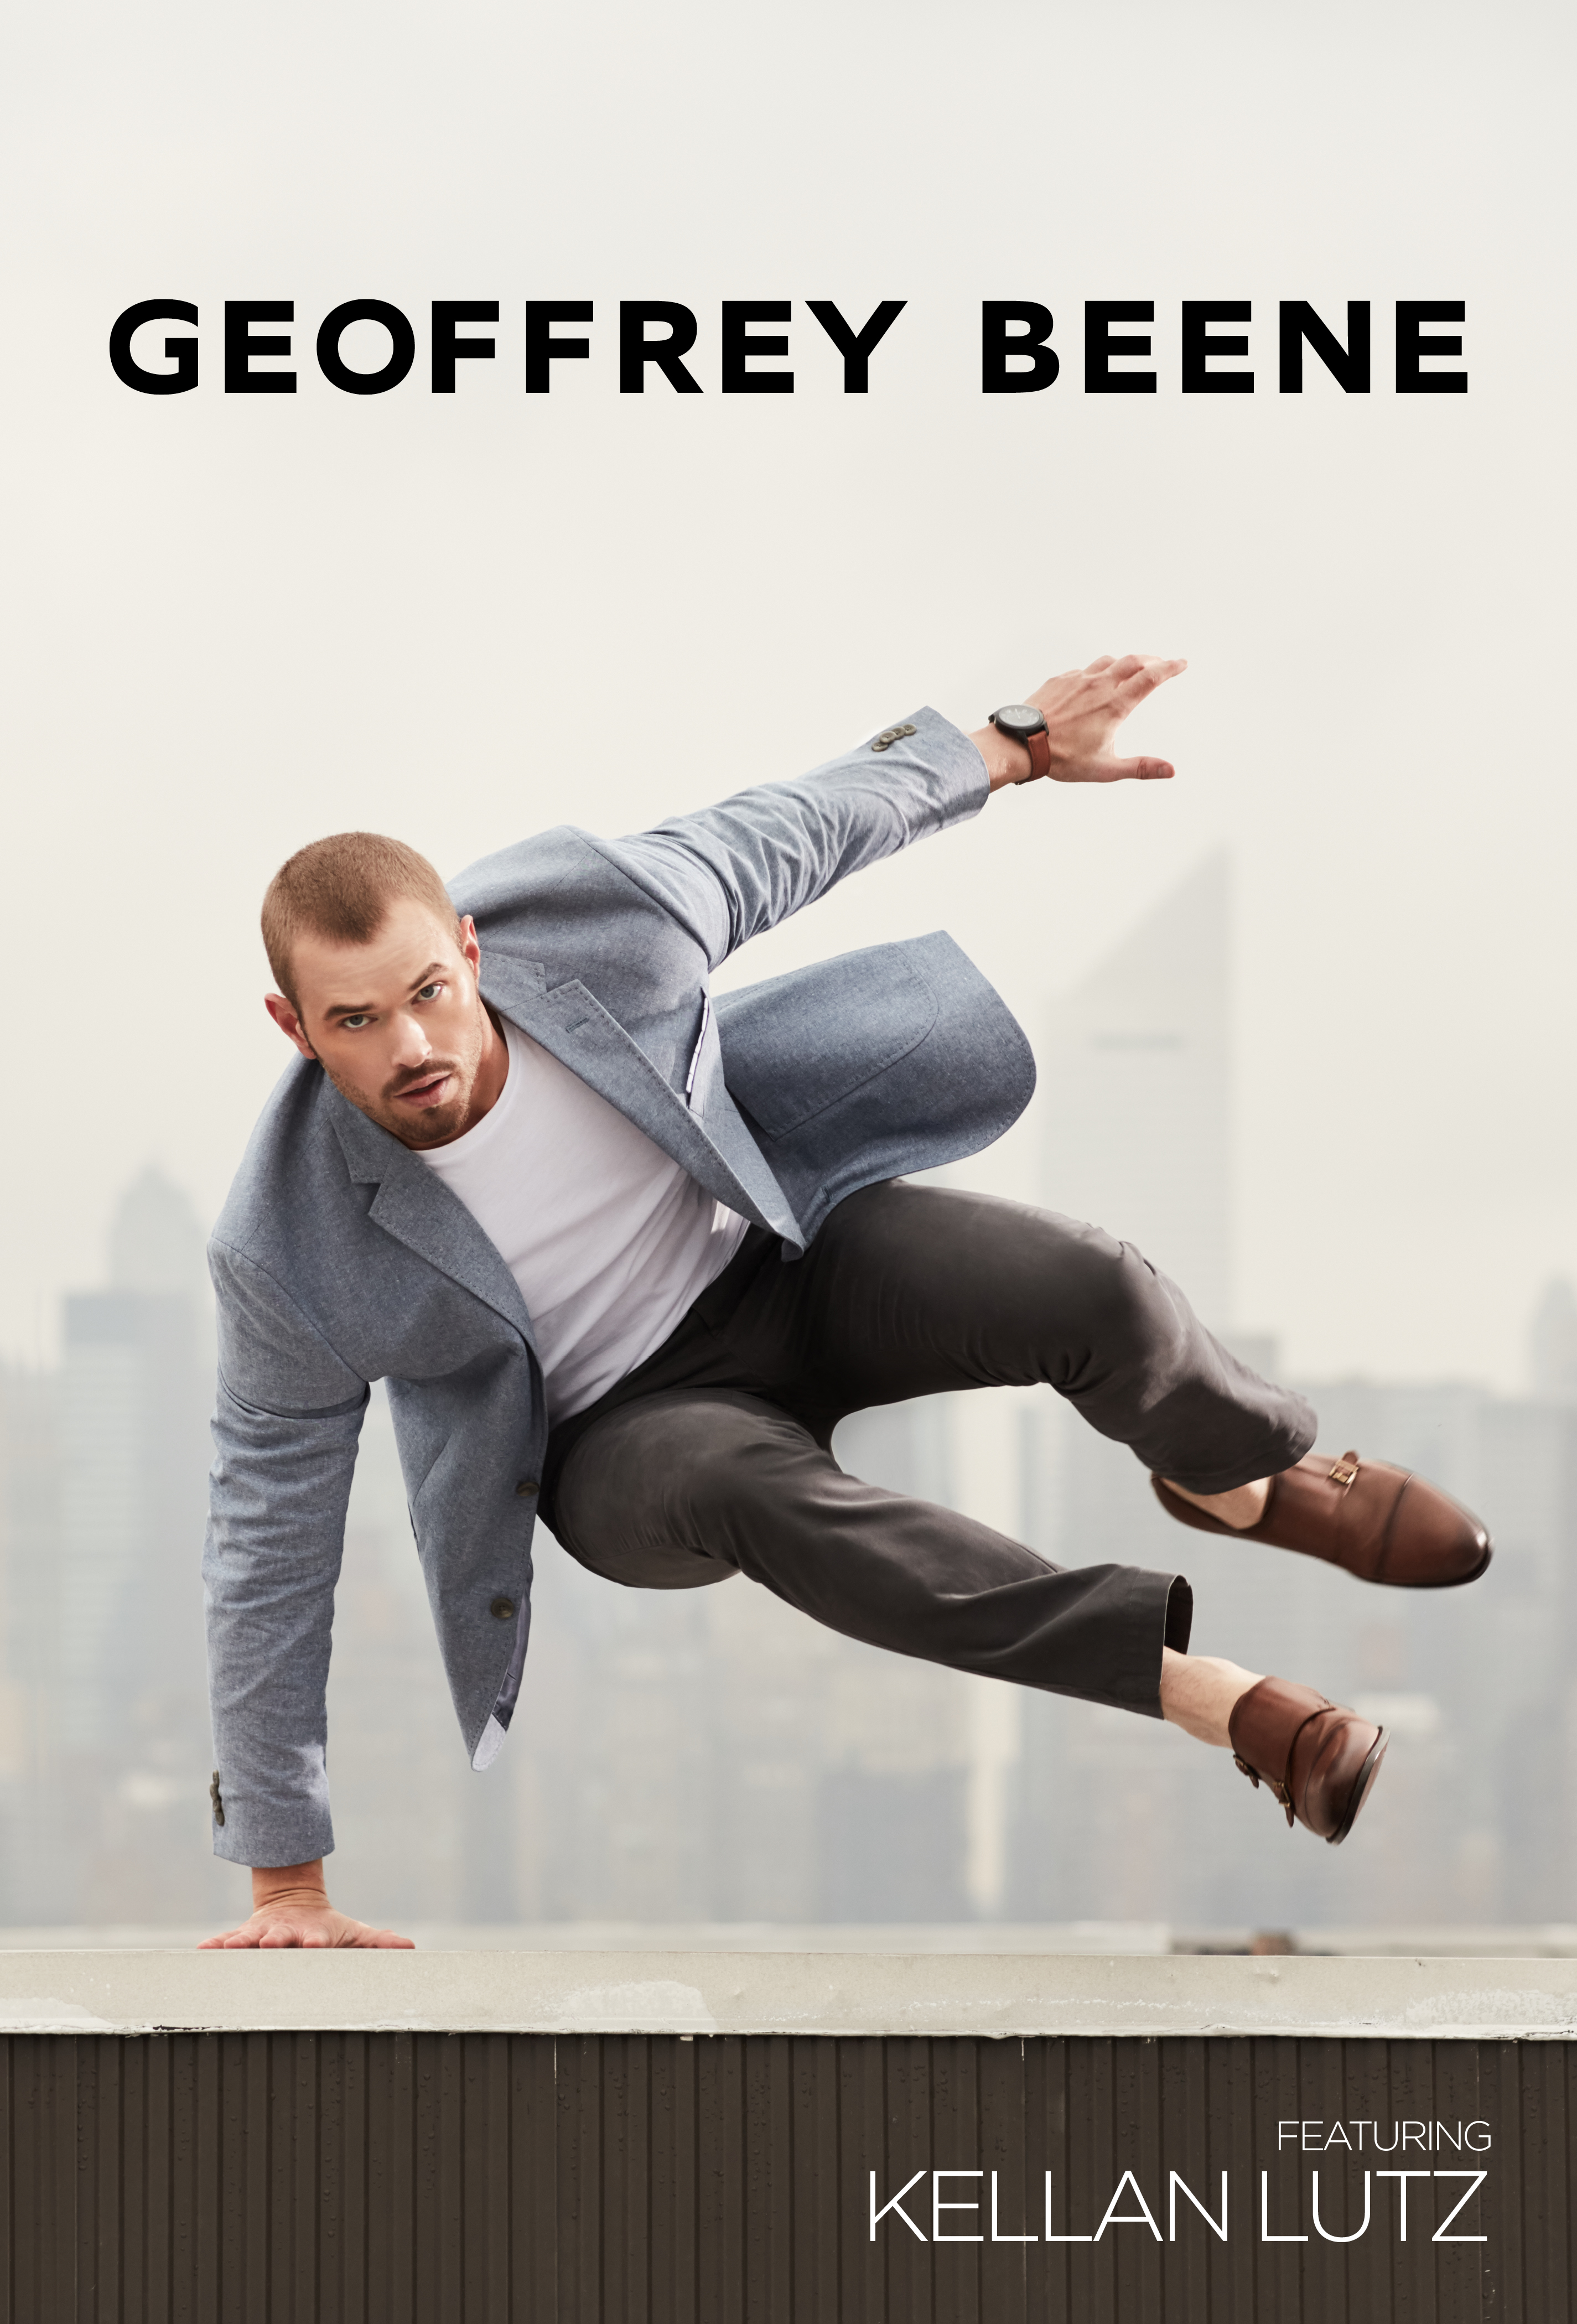 The Geoffrey Beene commecials feature Kellan Lutz.